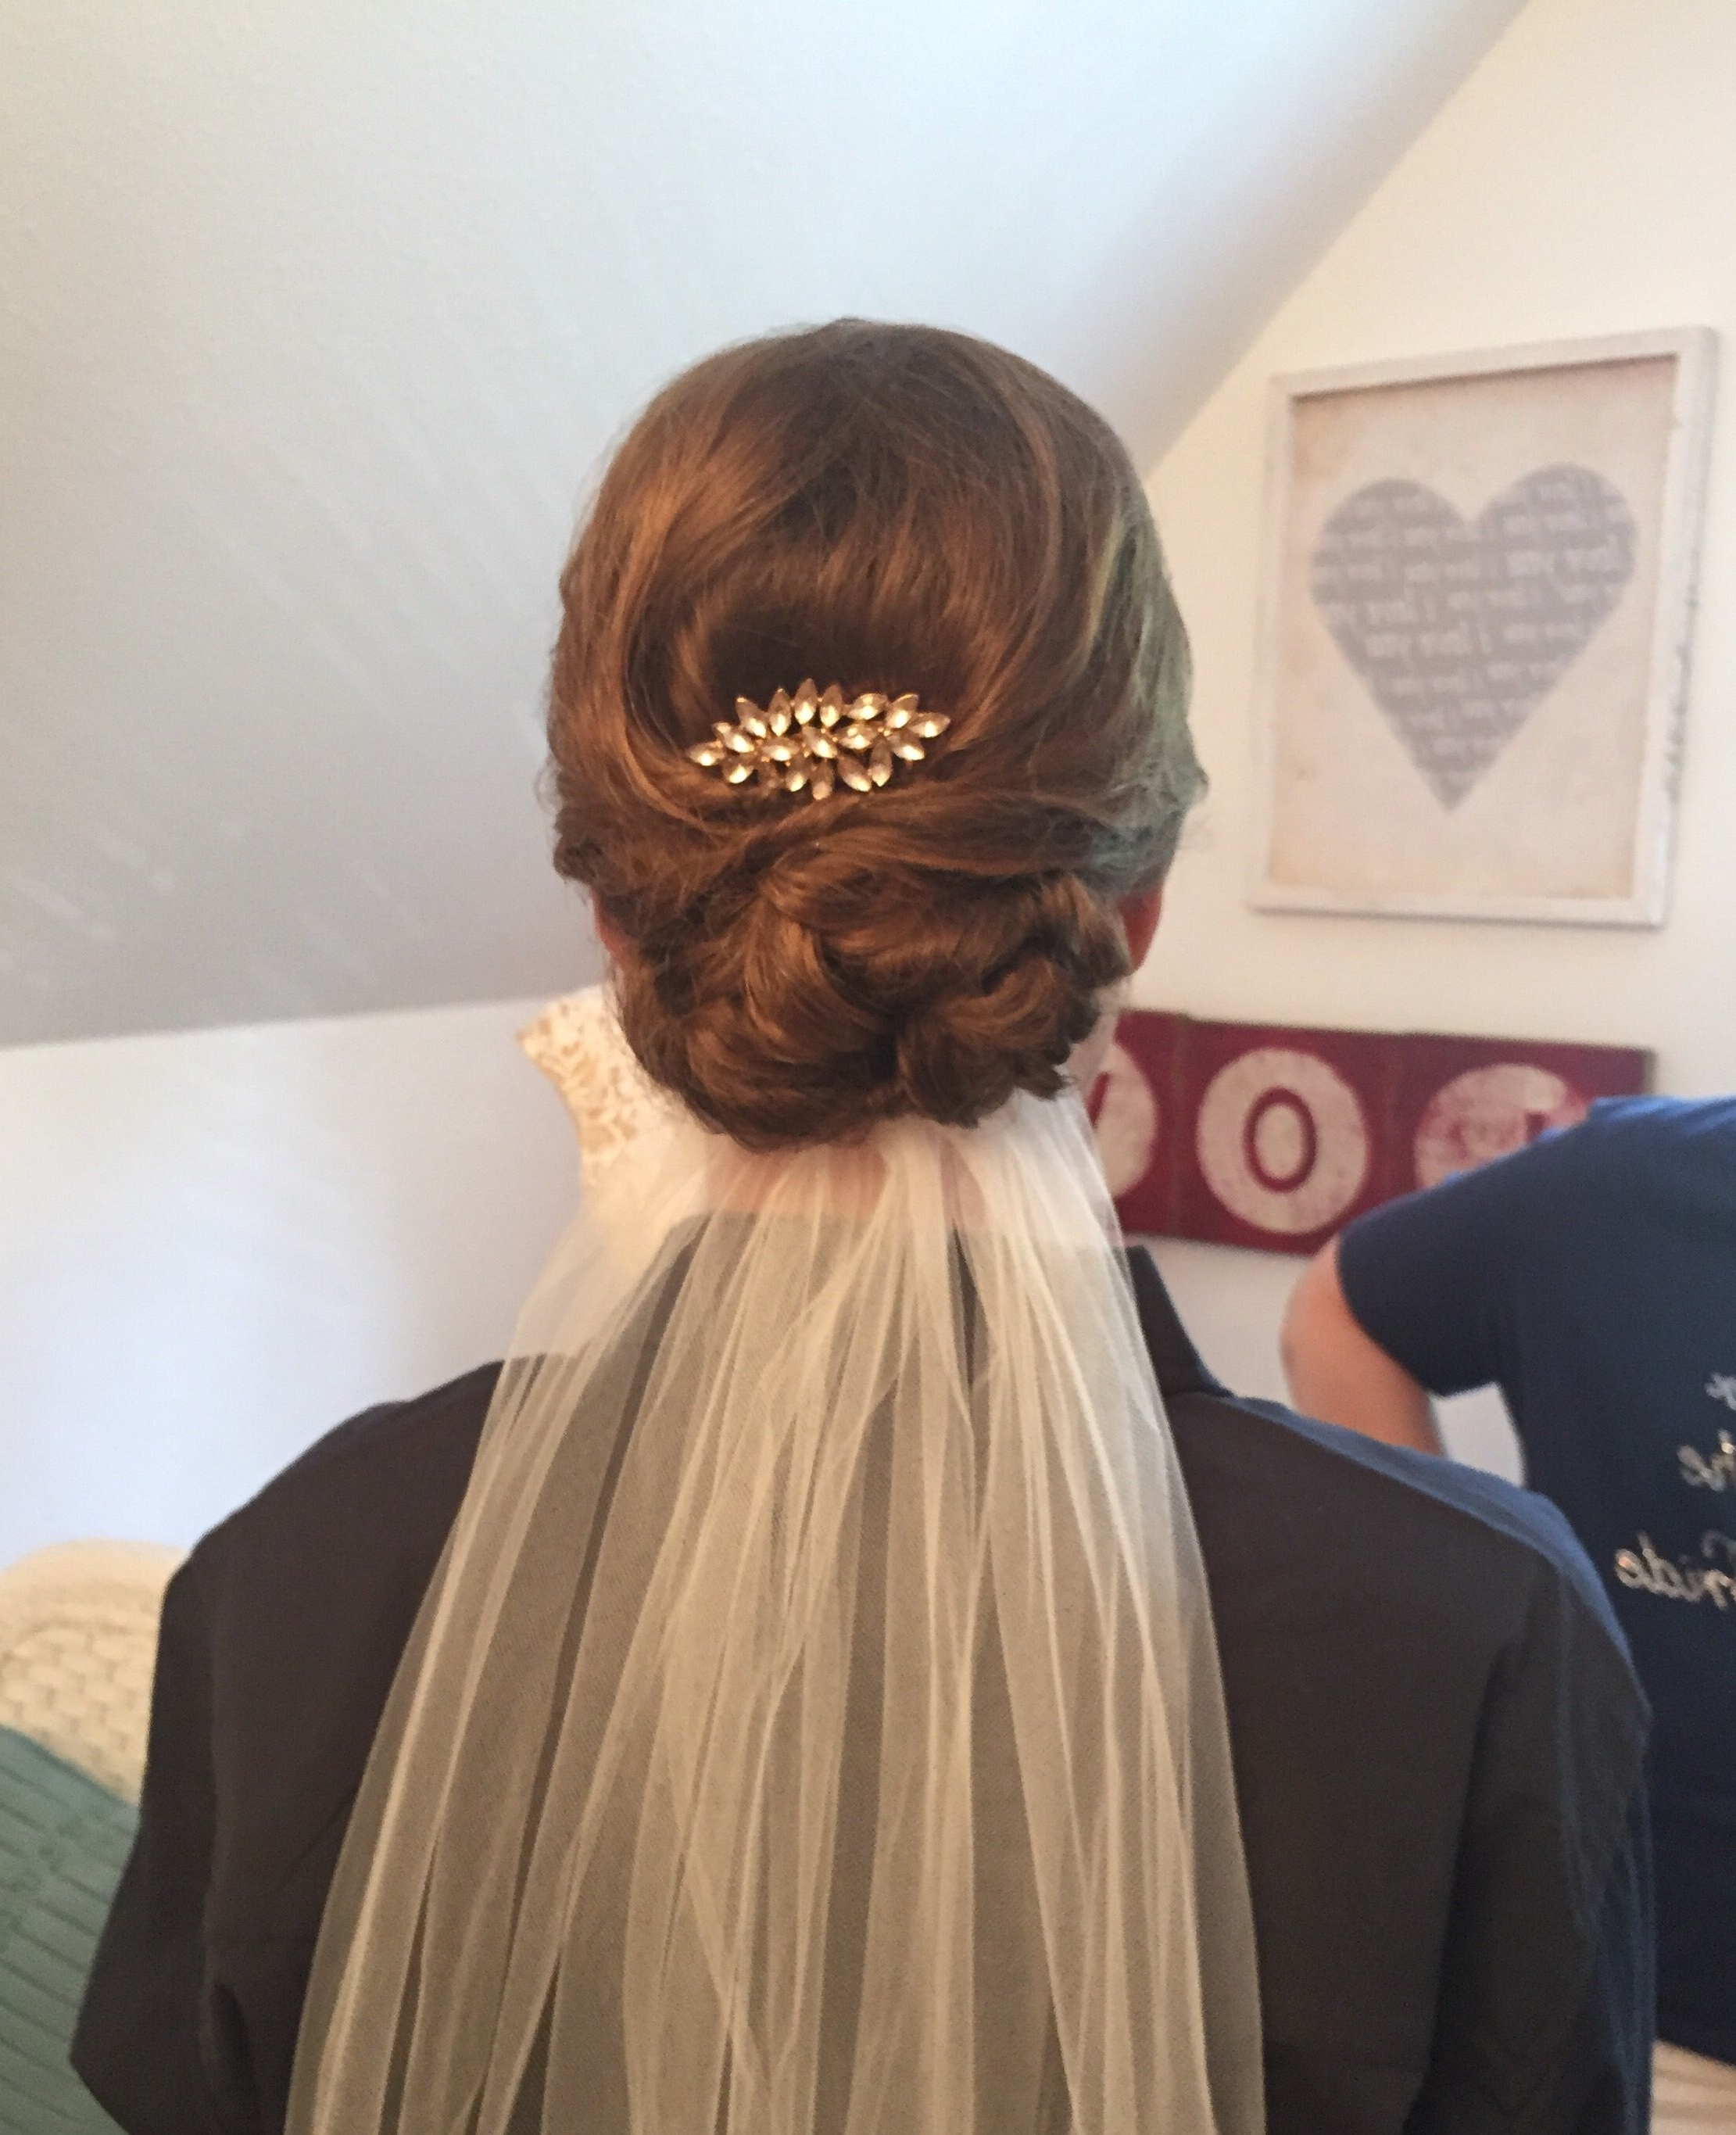 Bride Low Updo, Veil Underneath, Vintage Clip, Short, Thin Hair Throughout Trendy Wedding Hairstyles With Veil Underneath (View 2 of 15)